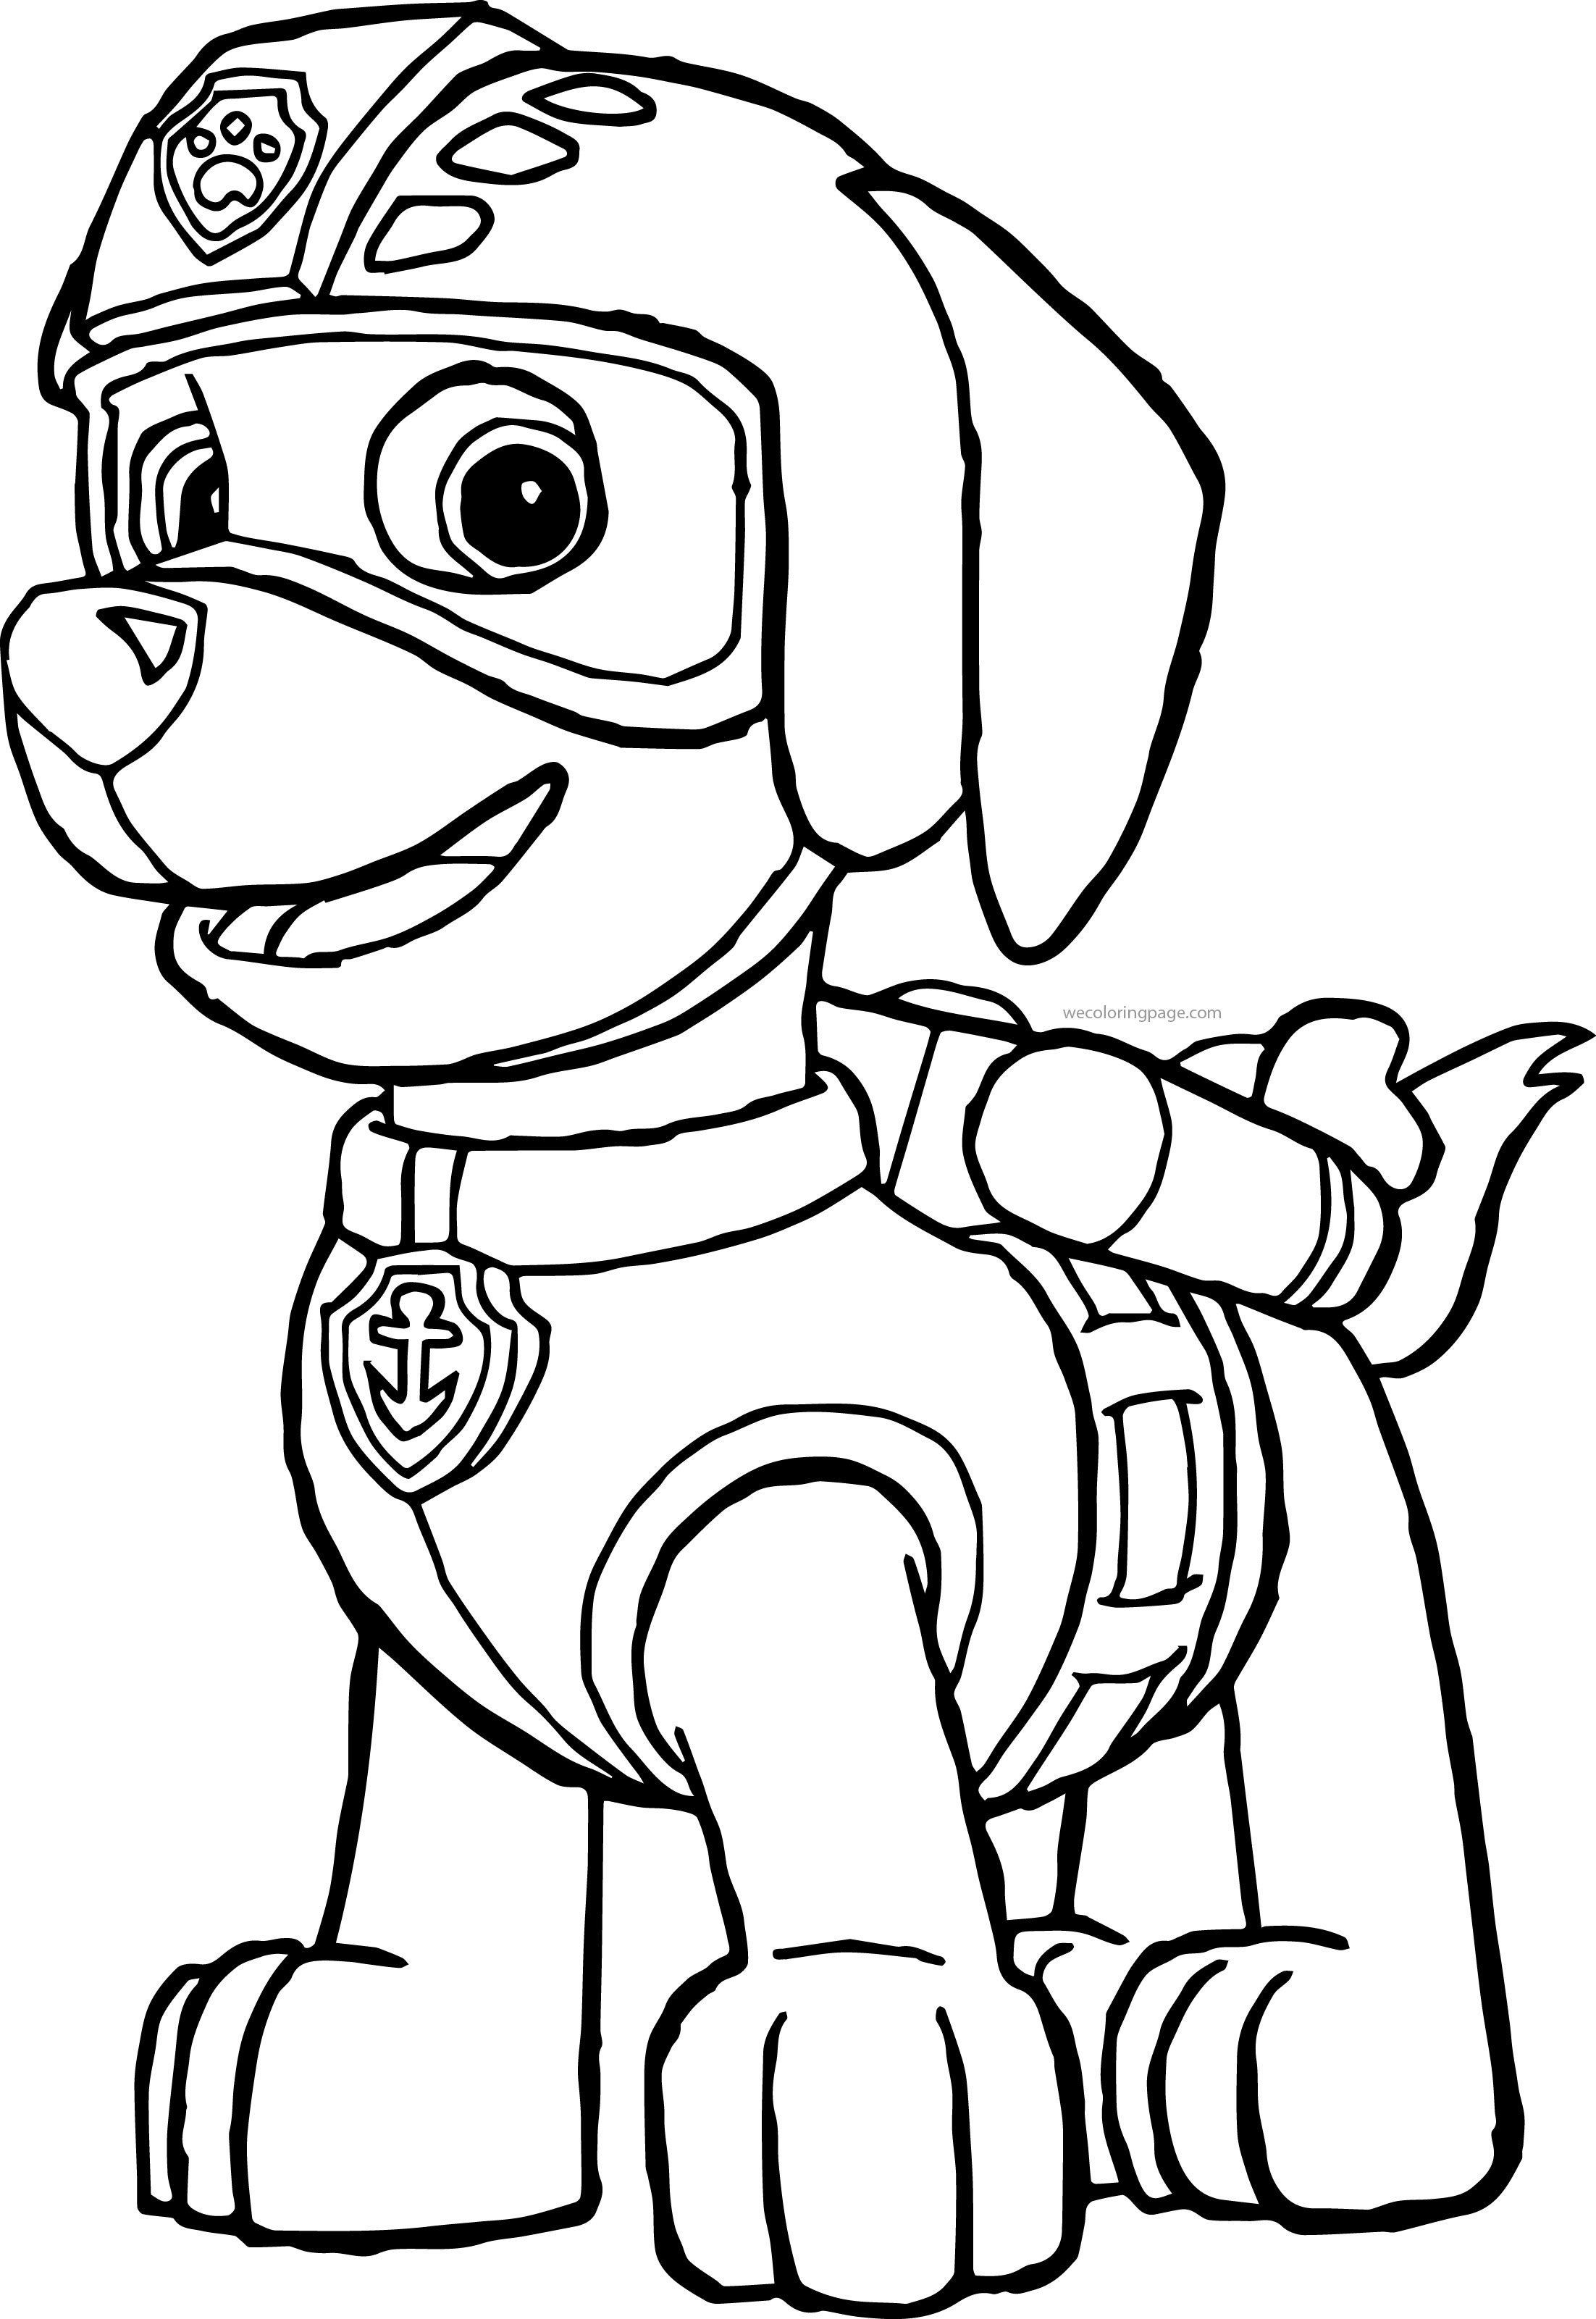 Paw patrol coloring pages robo dog - Paw Patrol Coloring Pages